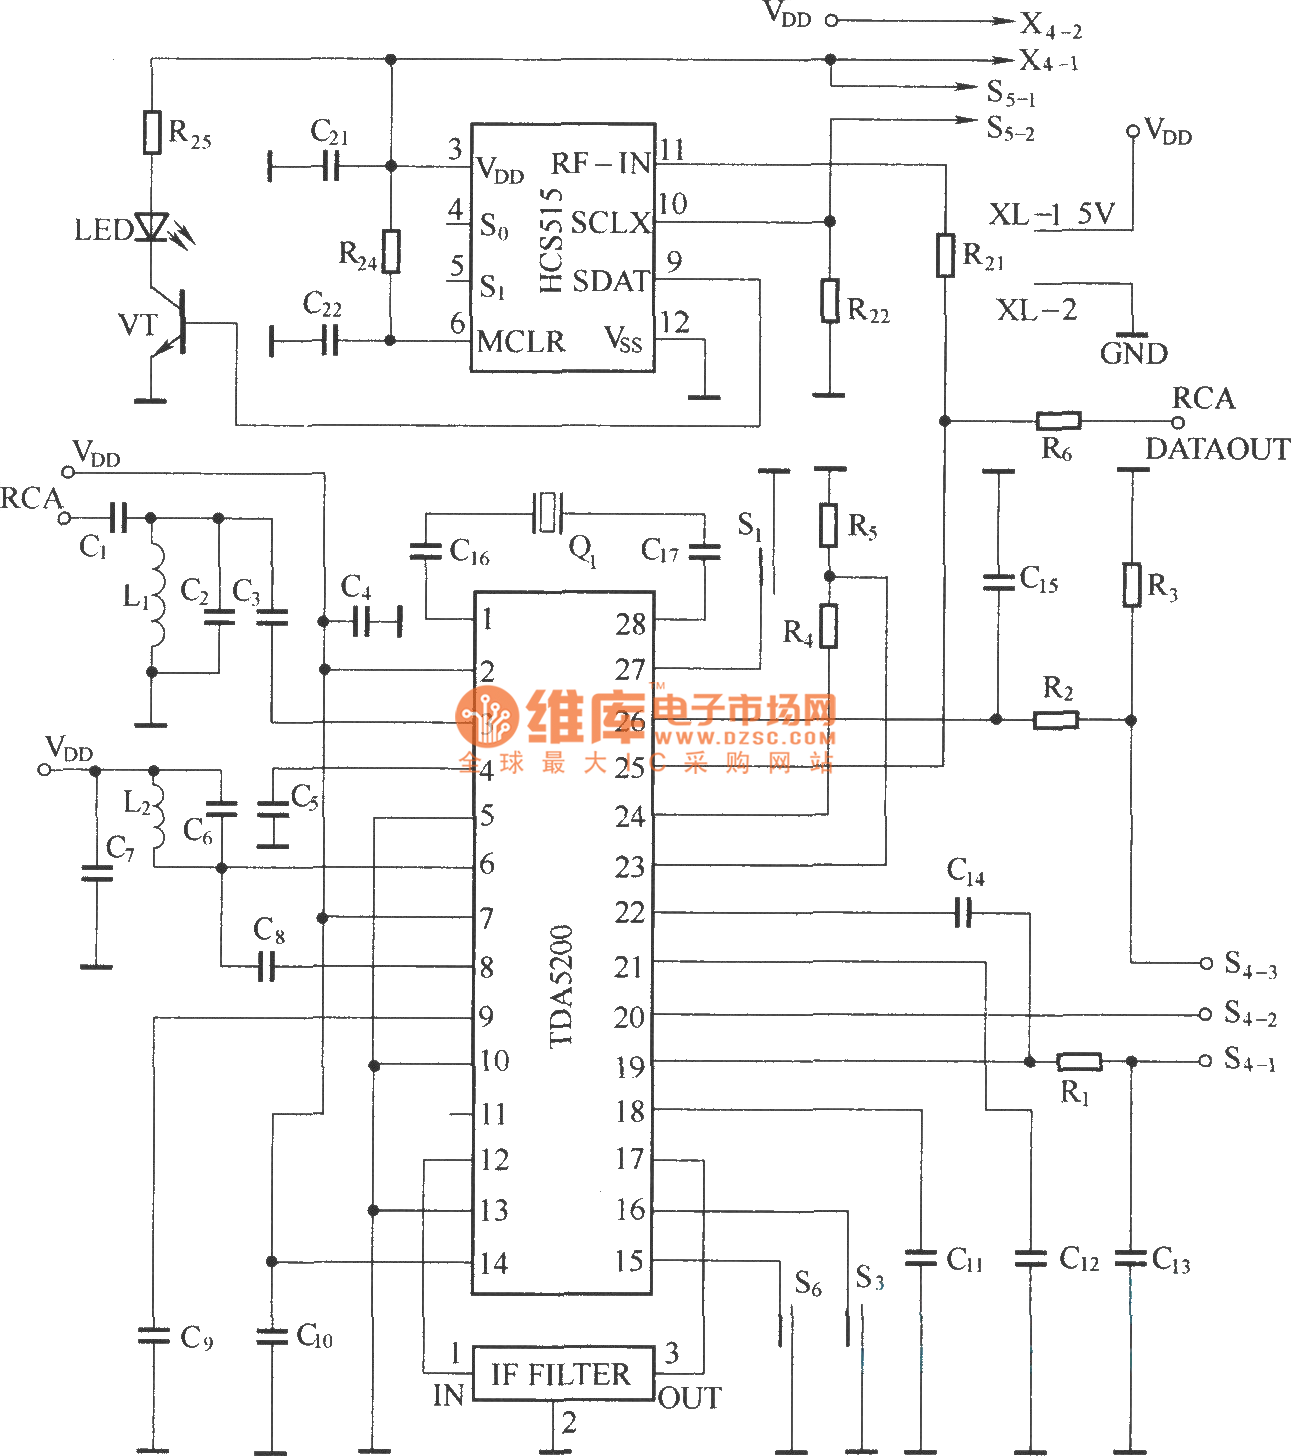 Heterodyne Remote Control Receiving Circuit Diagram Wwwseekiccom Circuitdiagram Powersupplycircuit Negativevoltage